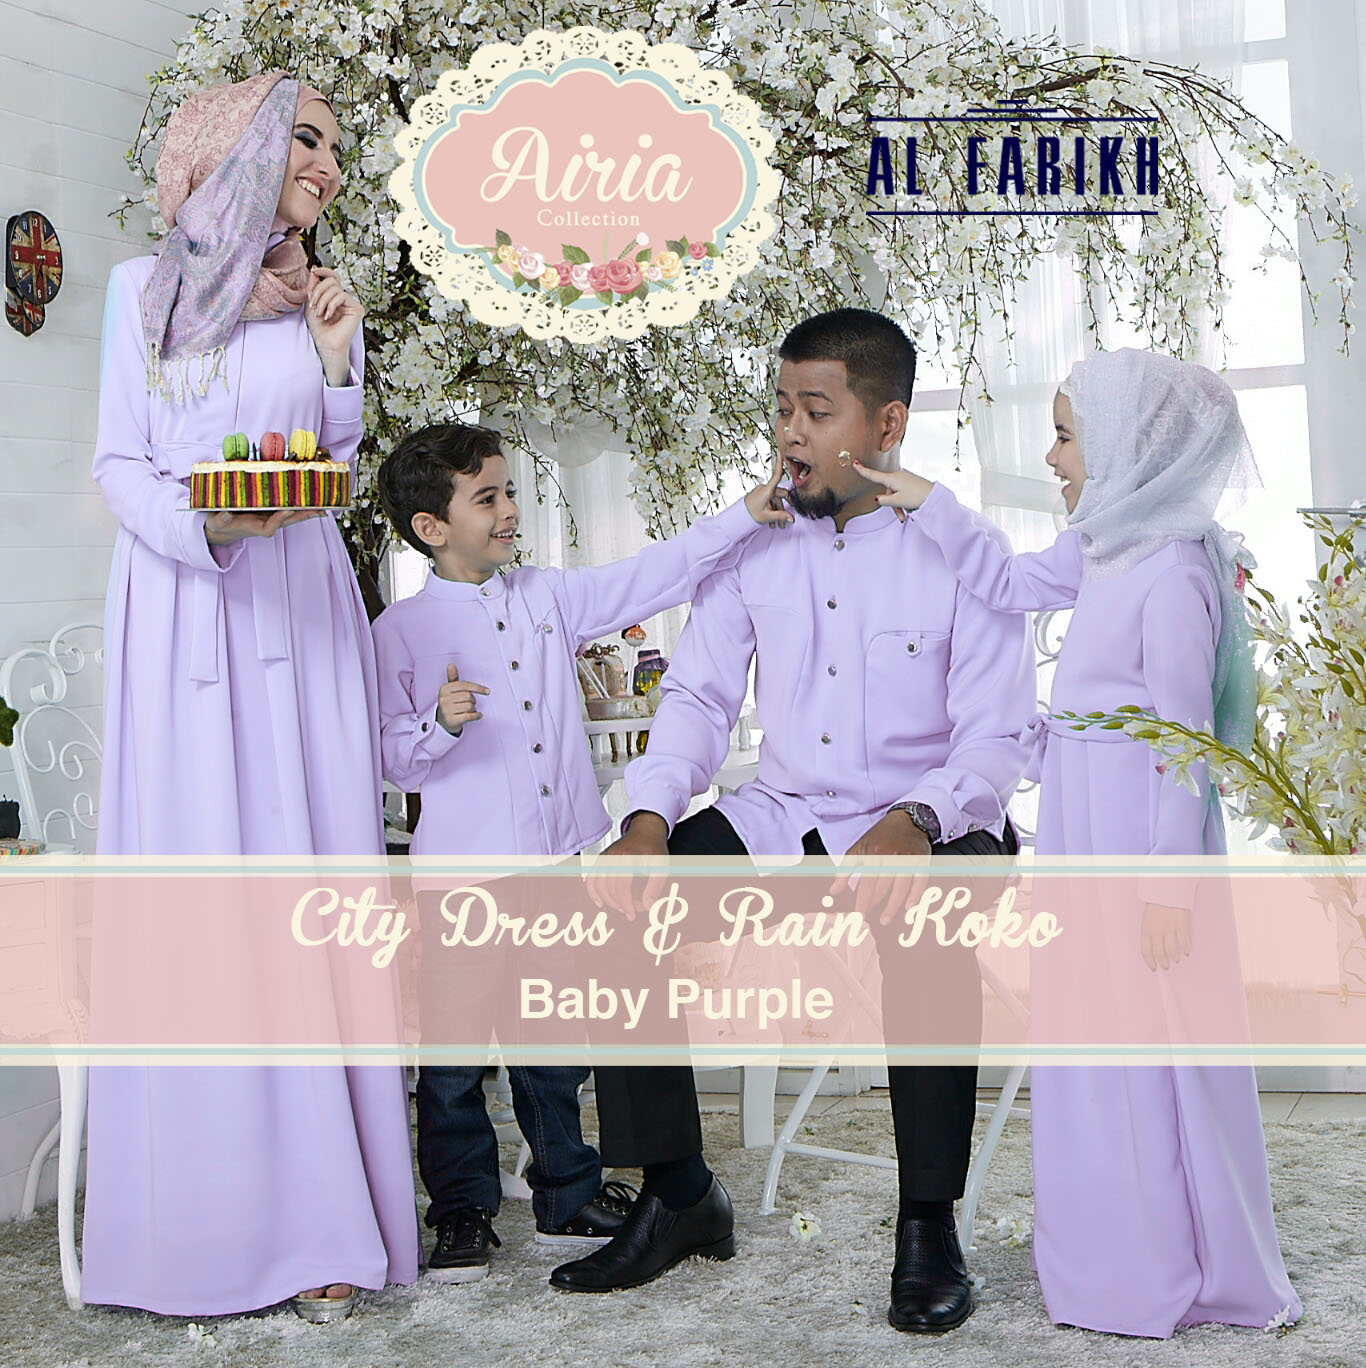 Busana Muslim Sarimbit Keluarga City Dress & Rain Koko by Airia Baby Purple